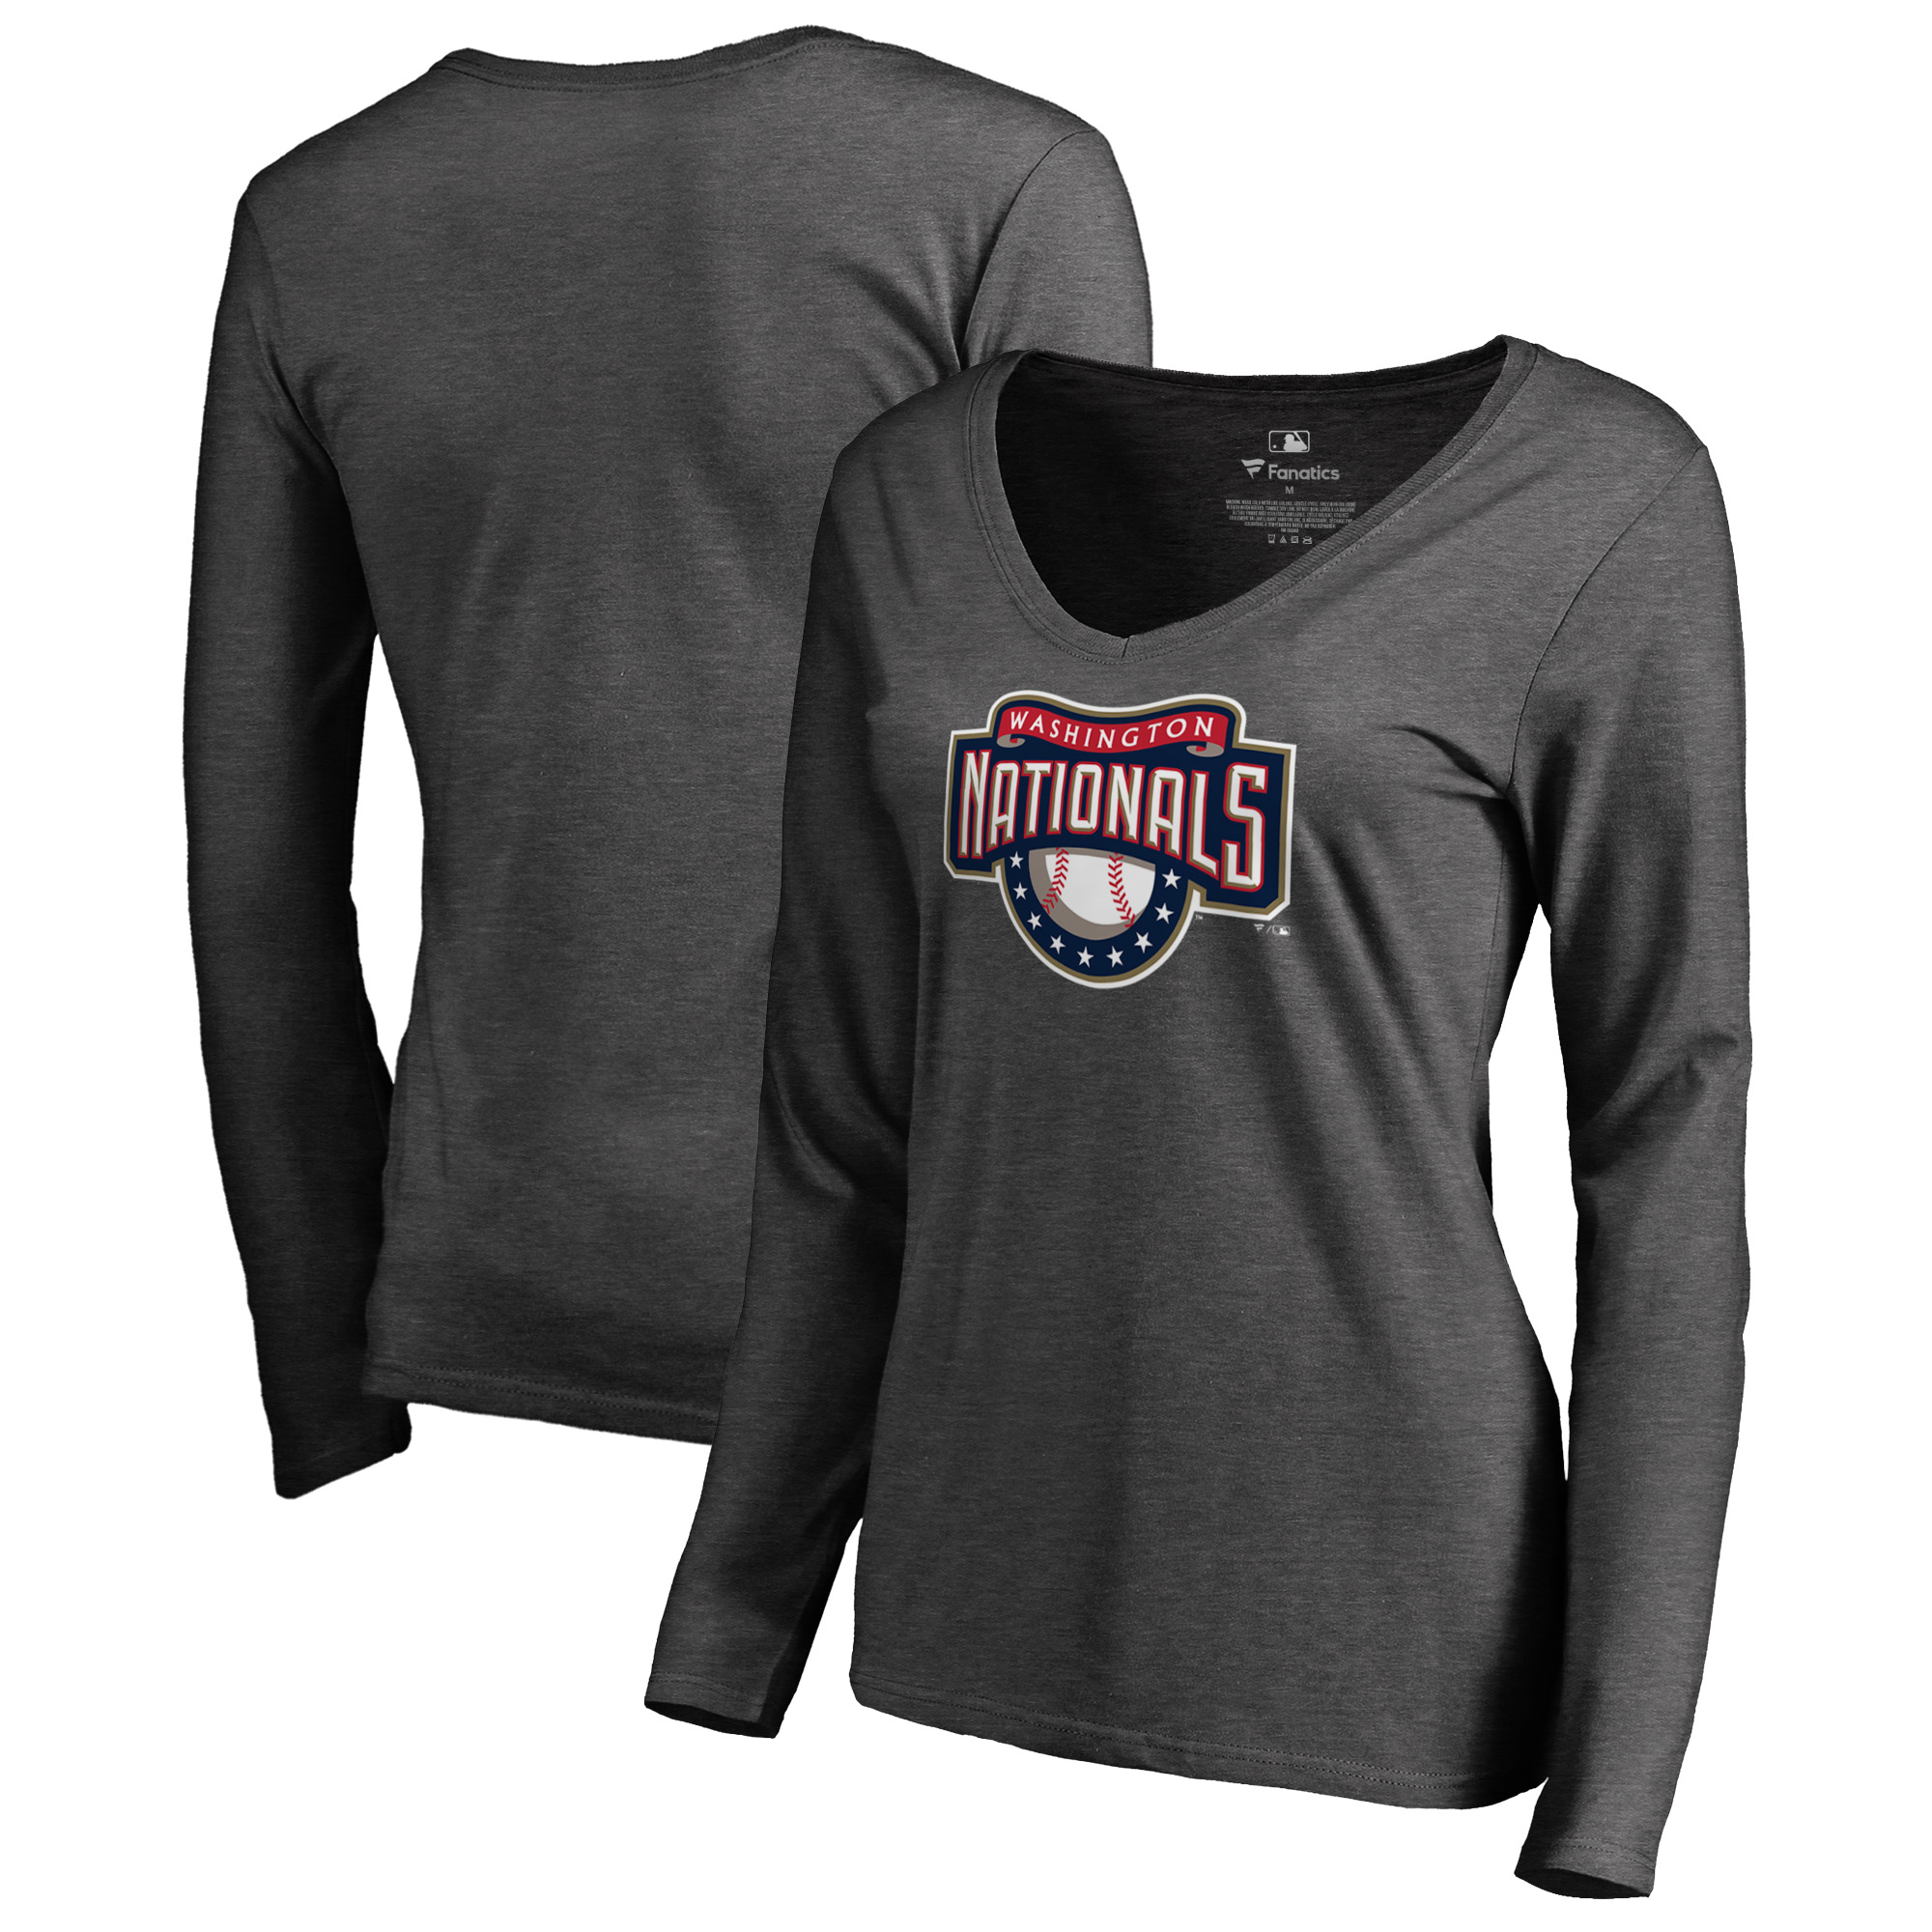 Washington Nationals Fanatics Branded Women's Cooperstown Collection Huntington Long Sleeve V-Neck T-Shirt - Heathered Gray